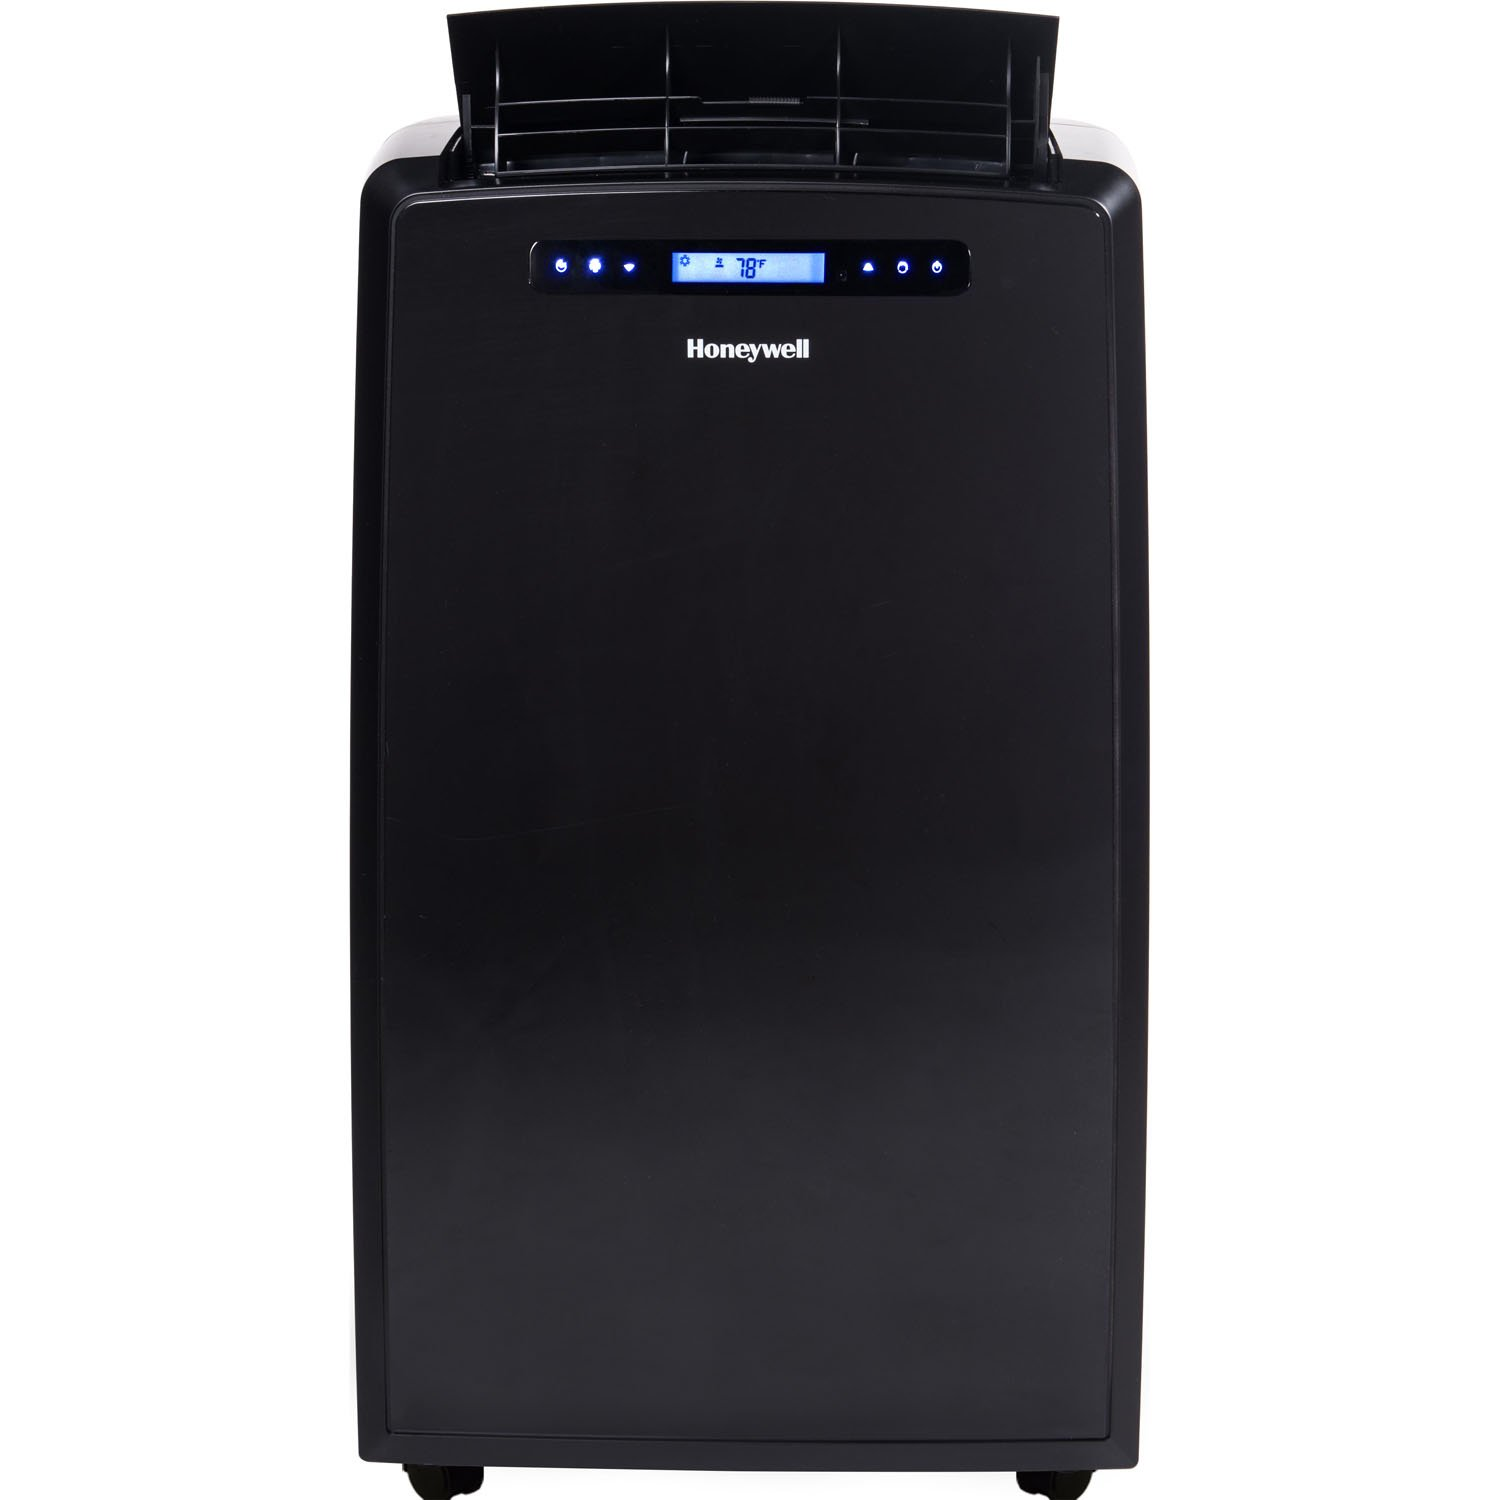 MM Series 14,000 BTU Portable Air Conditioner with Remote Control in Black